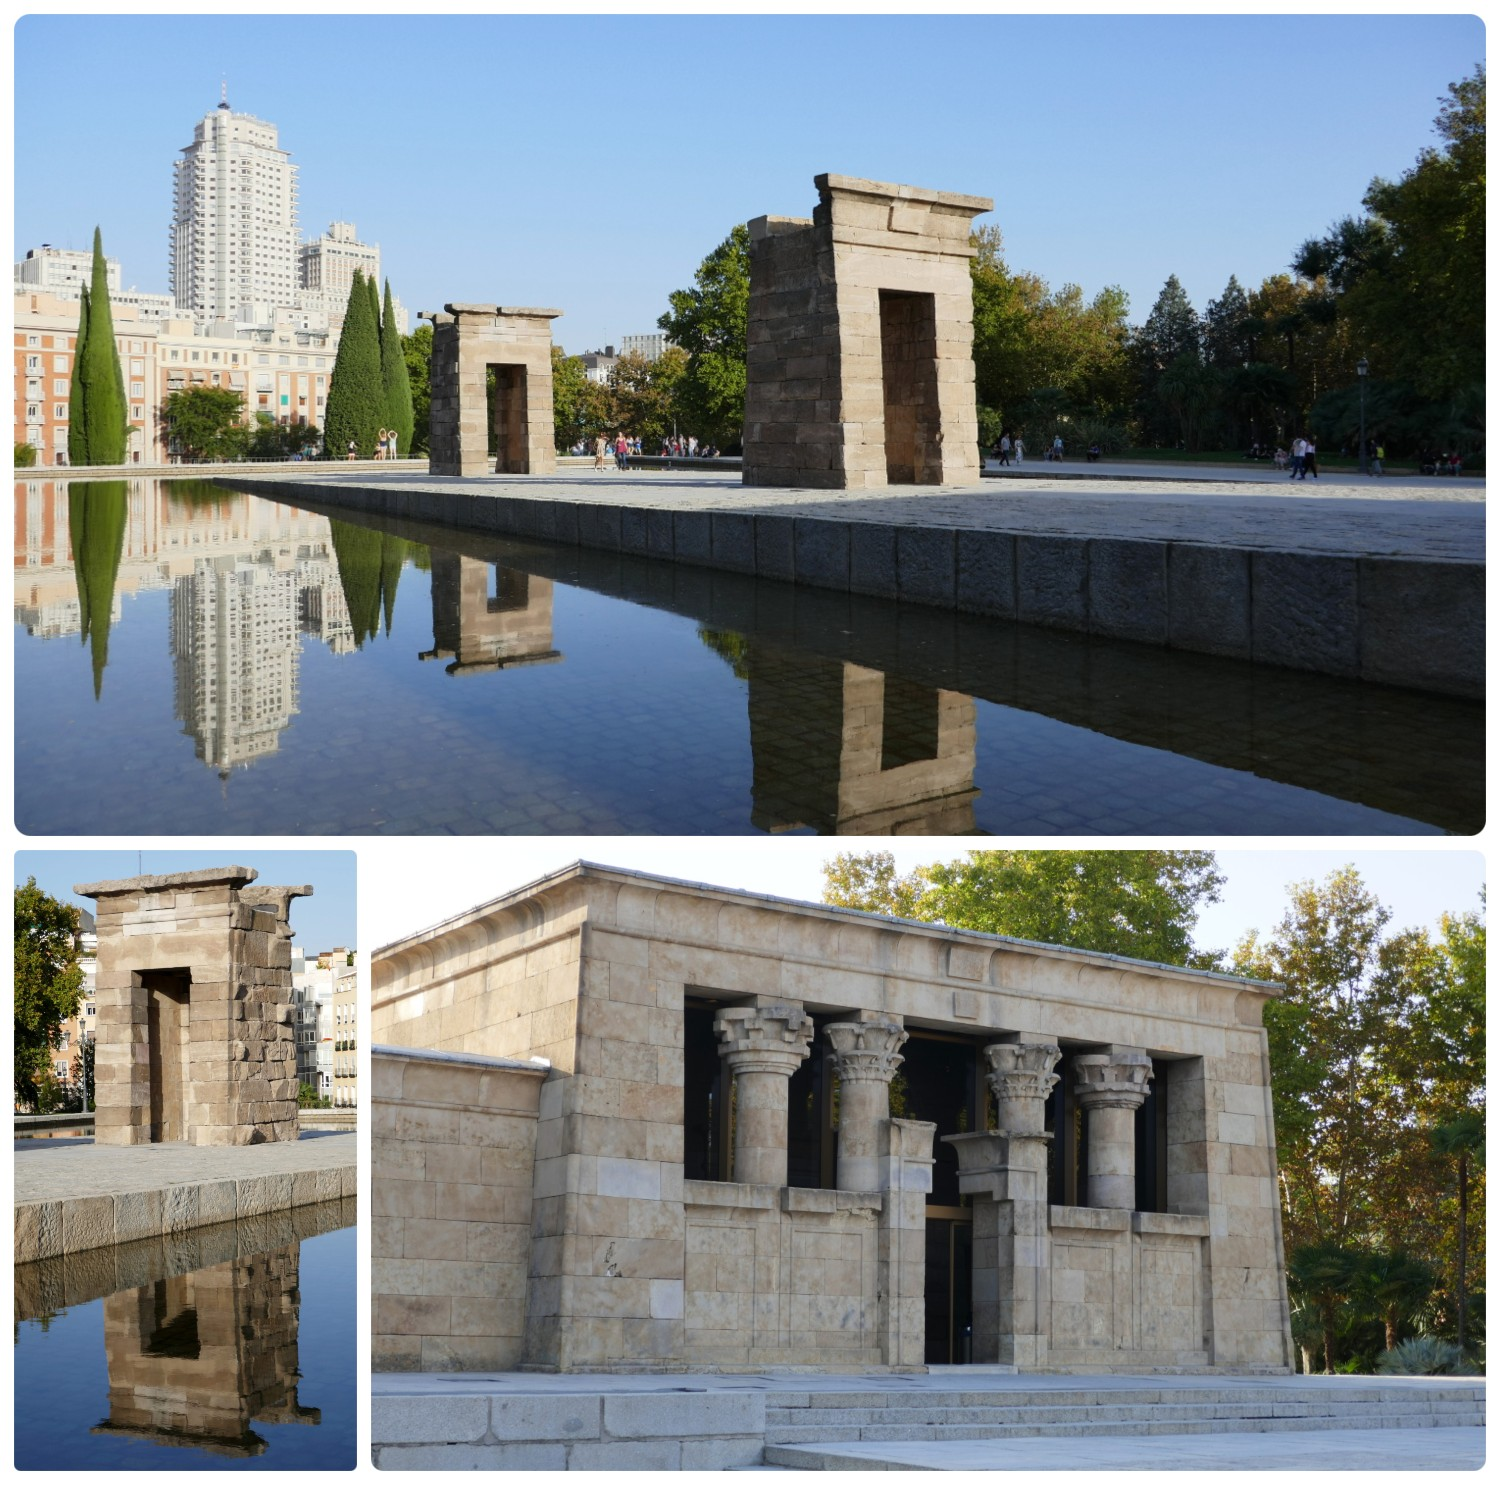 Temple of Debod in Western Park (Parque Oeste), Madrid, Spain.